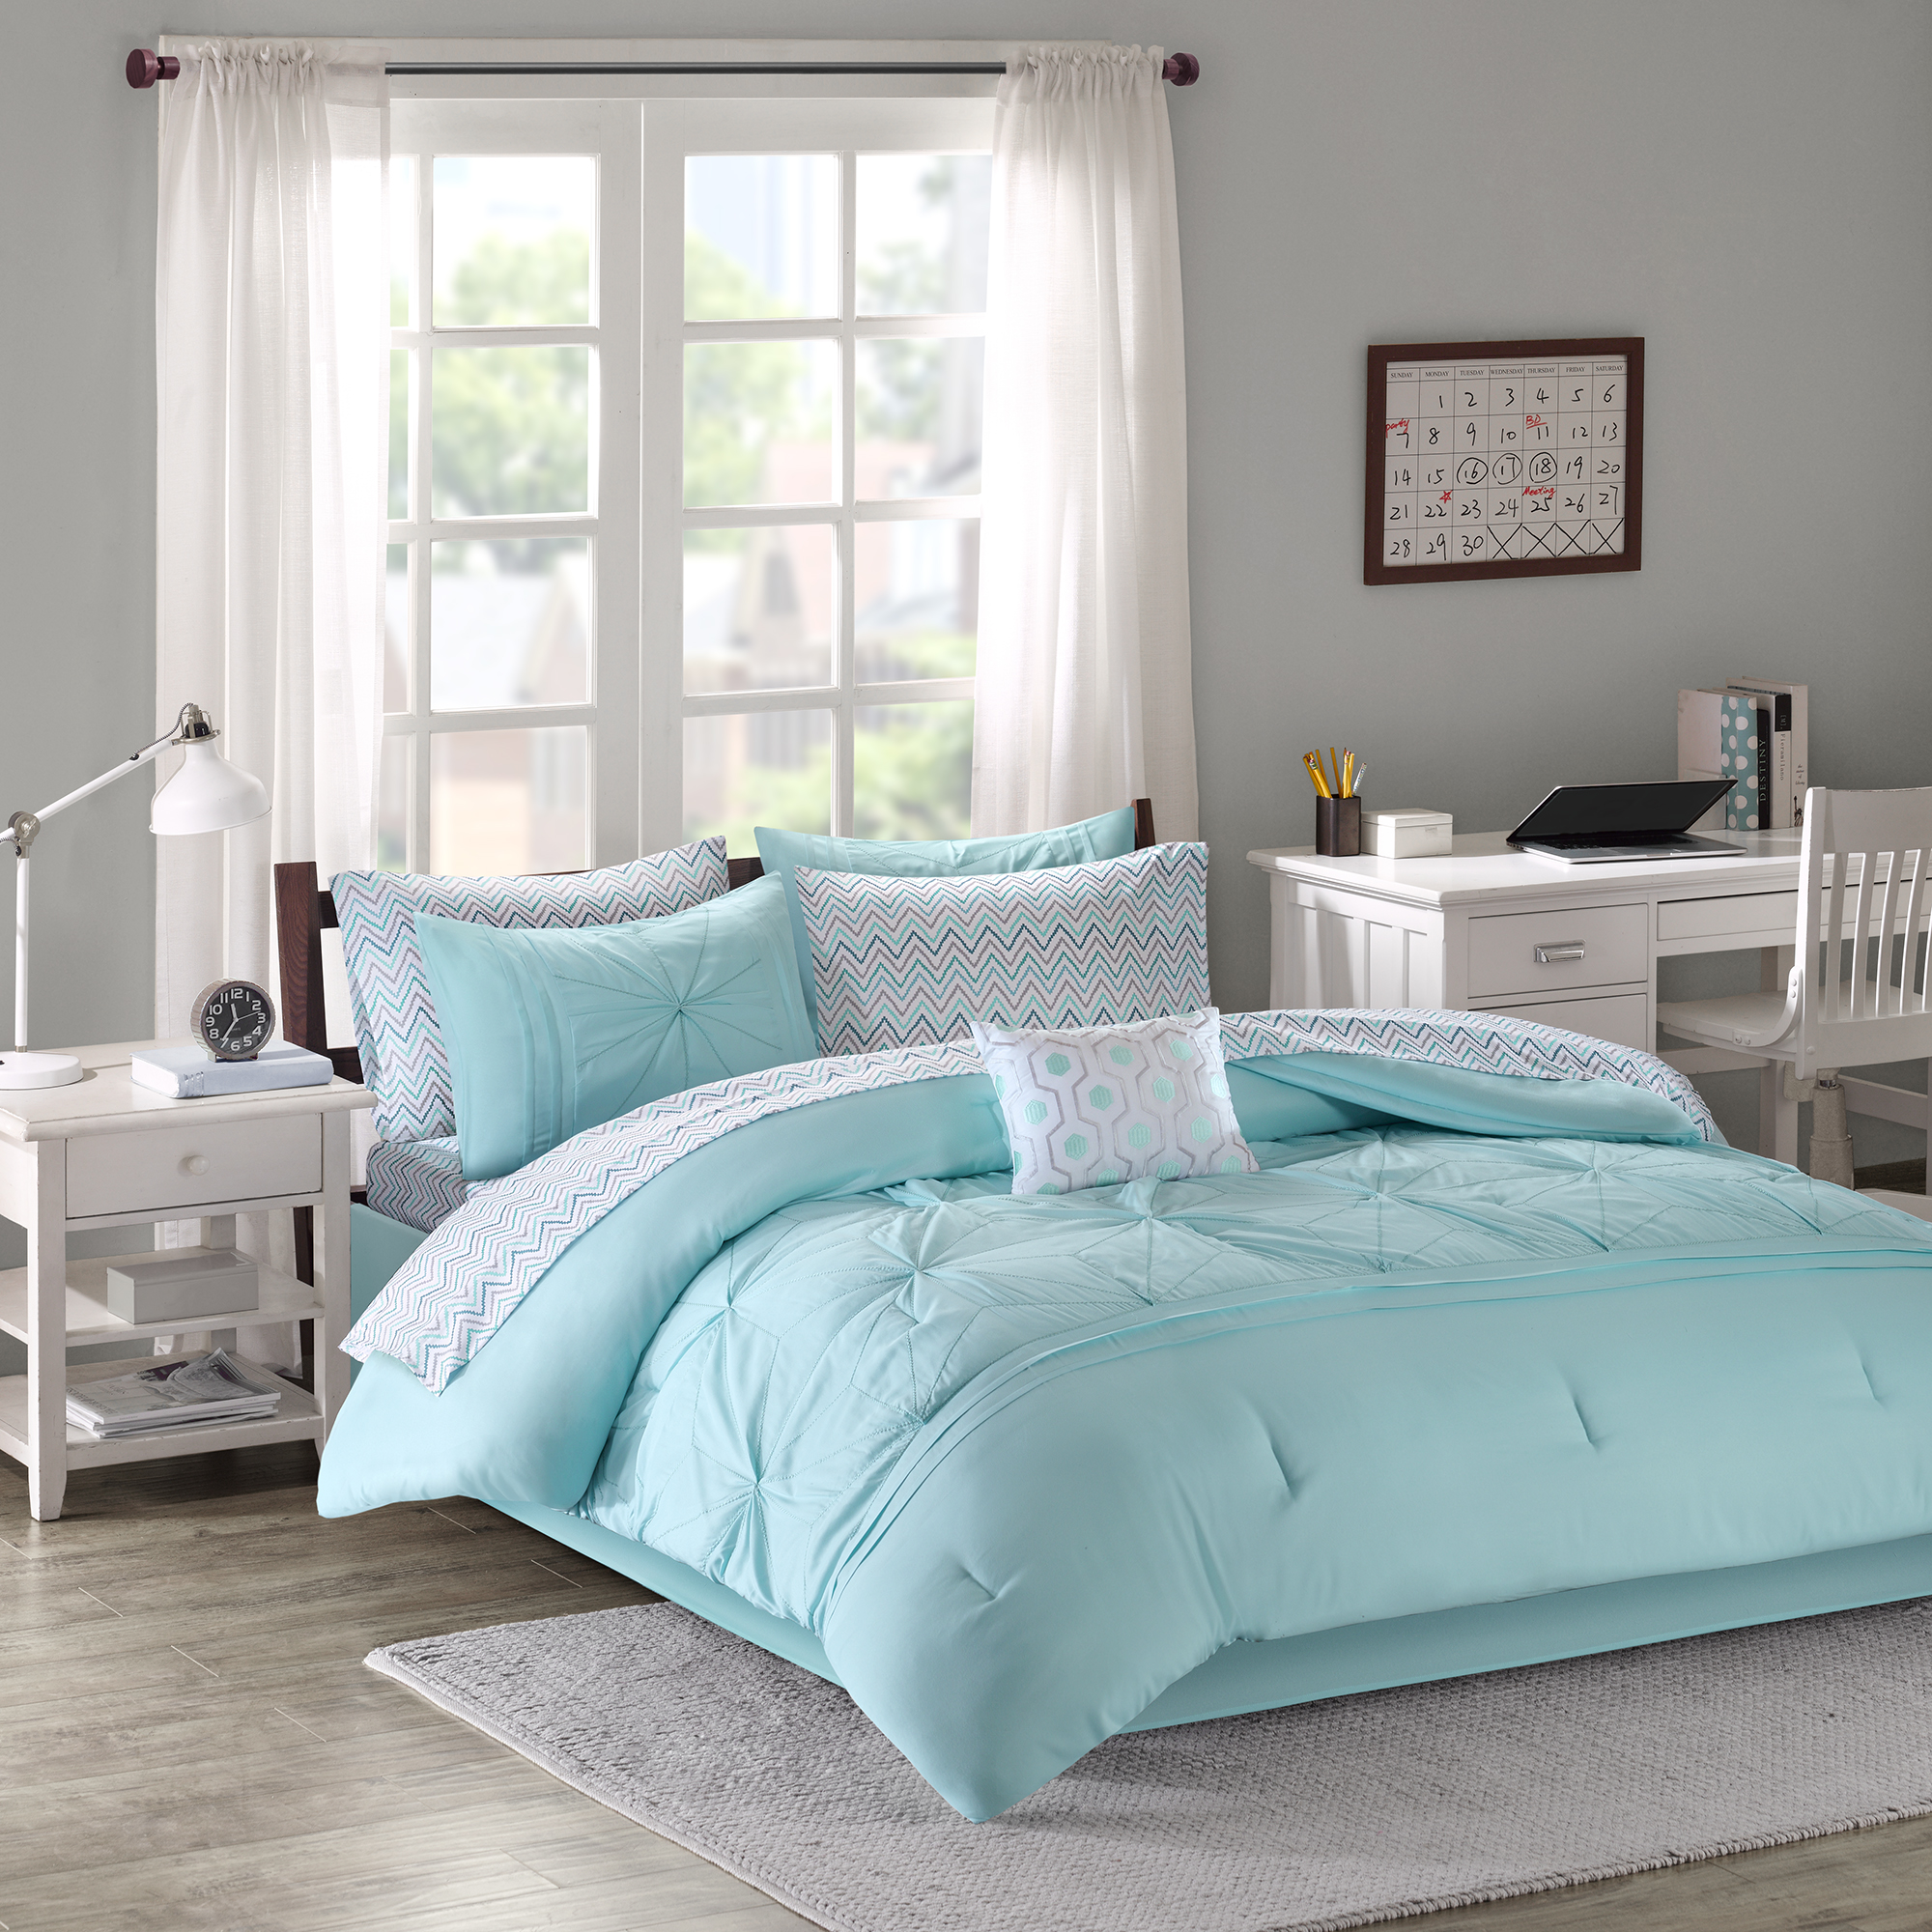 Home Essence Apartment Kara Comforter and Sheet Set